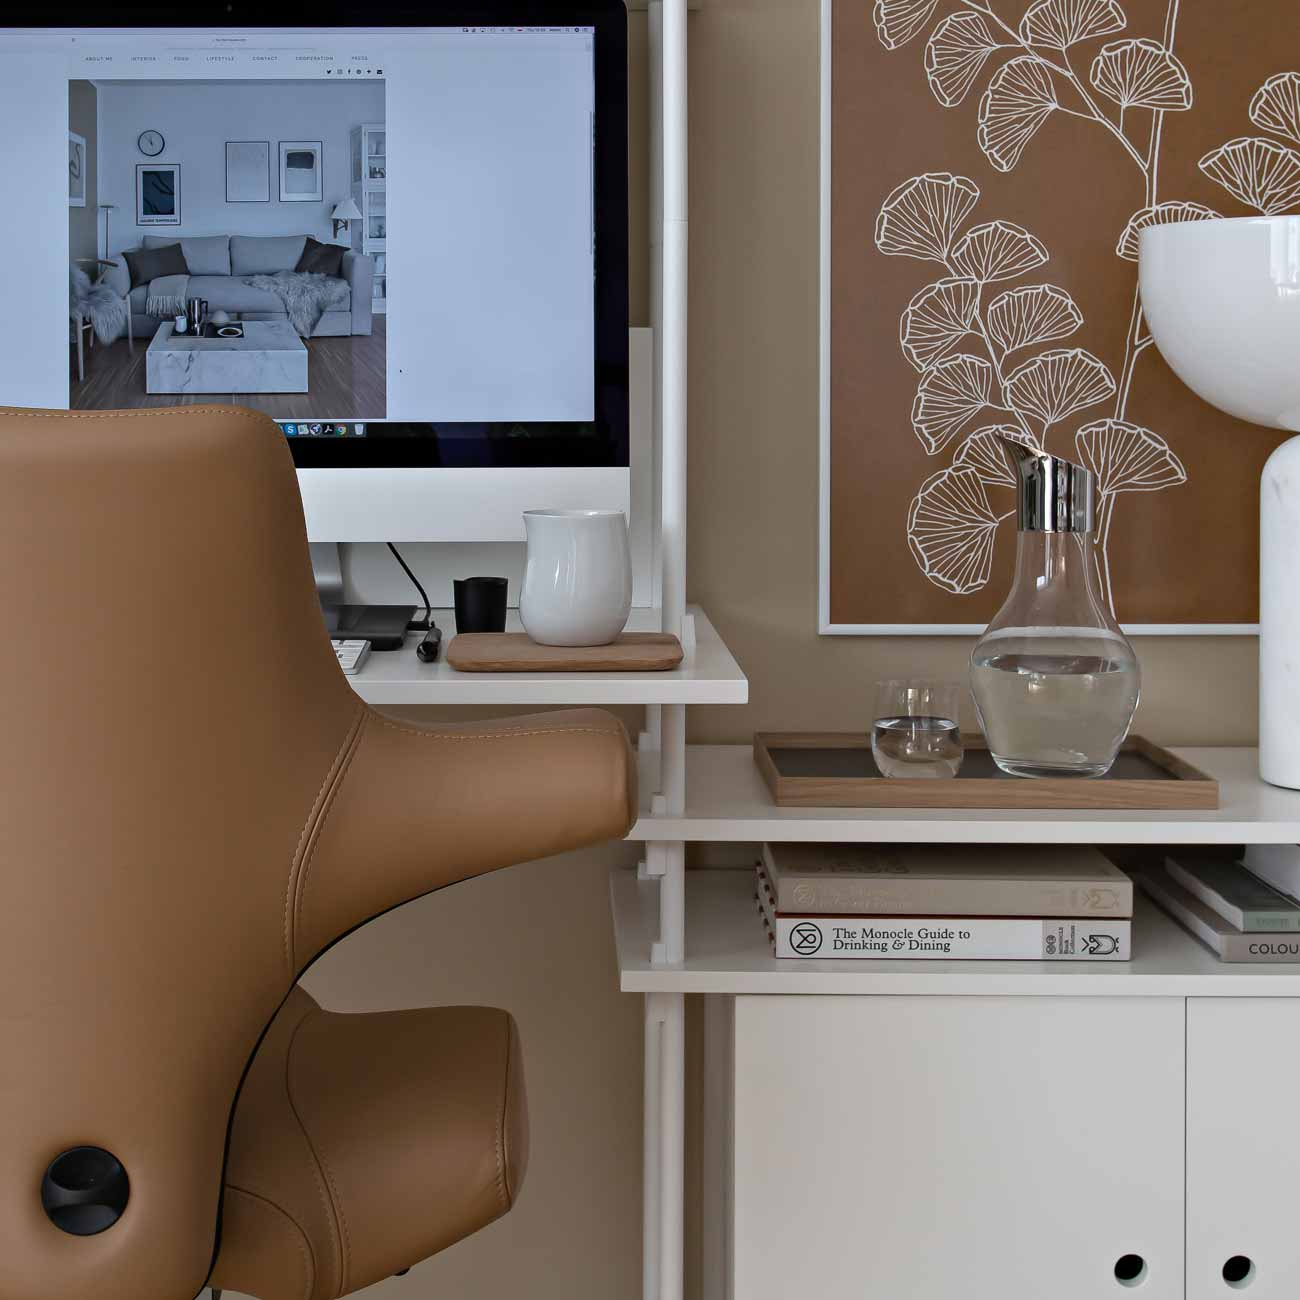 HÅG Capisco chair in brown Paloma camel leather at home office desk